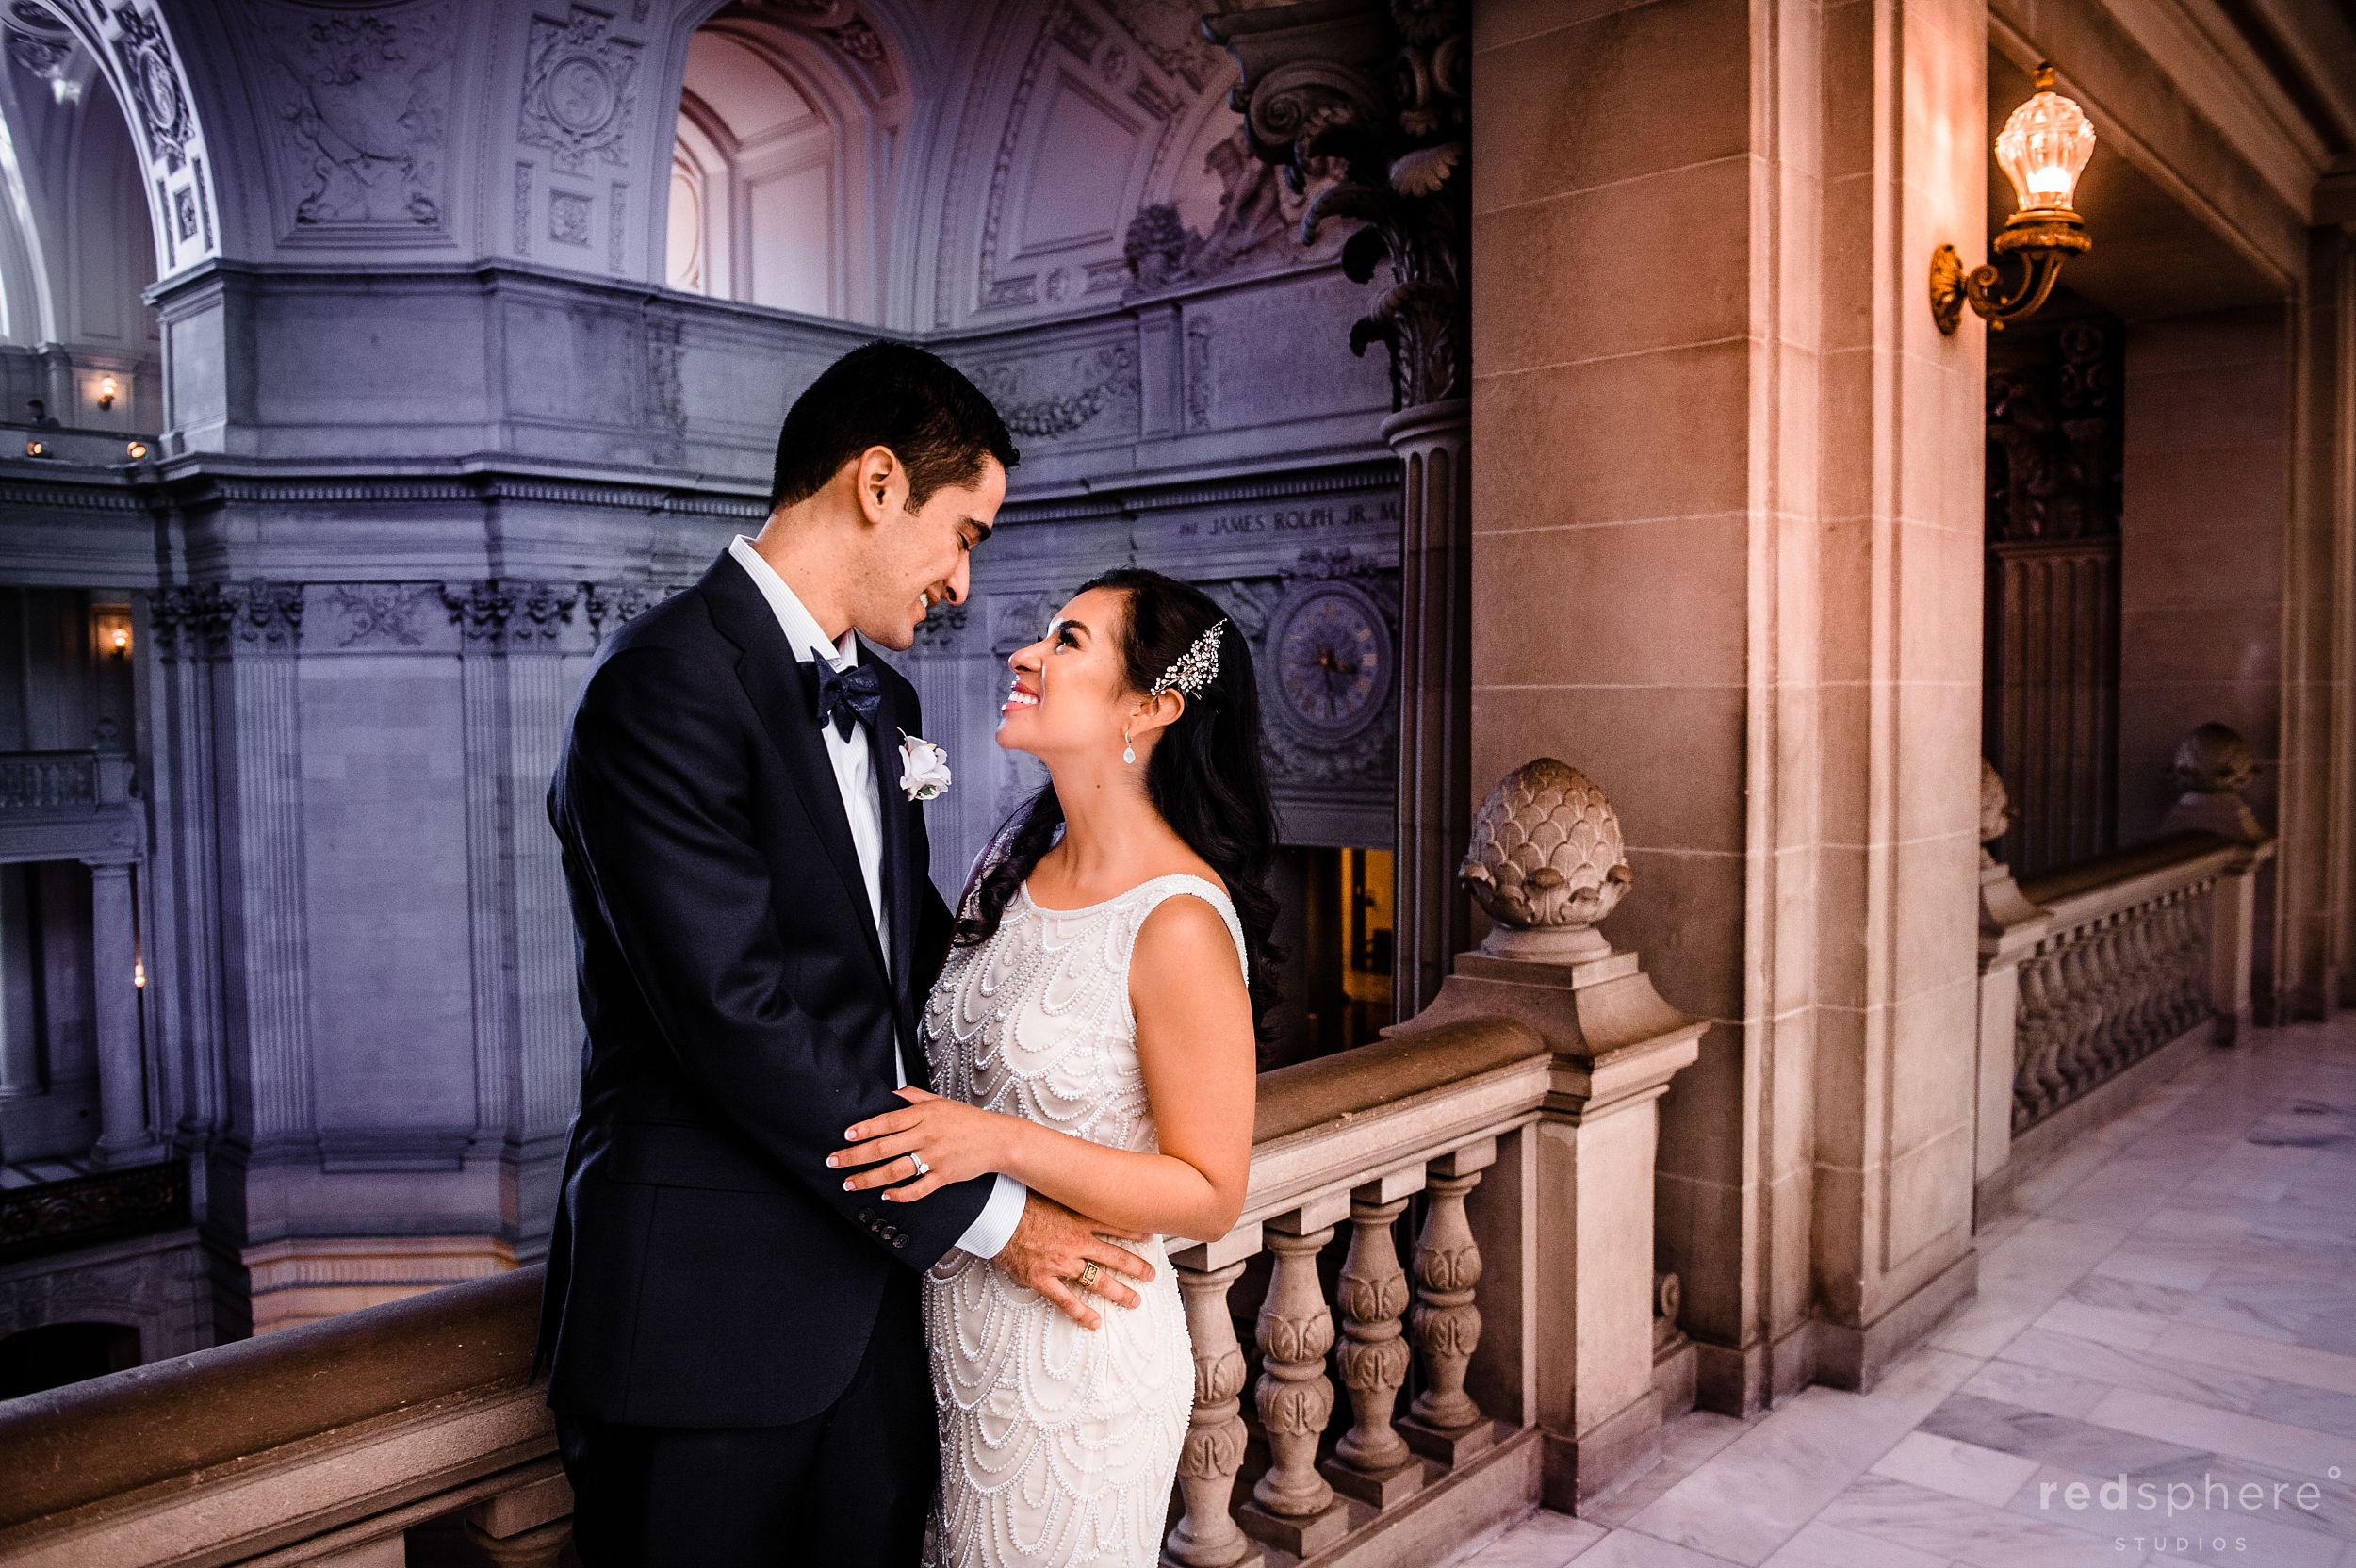 Bride and Groom Share a Special Moment at San Francisco City Hall Wedding